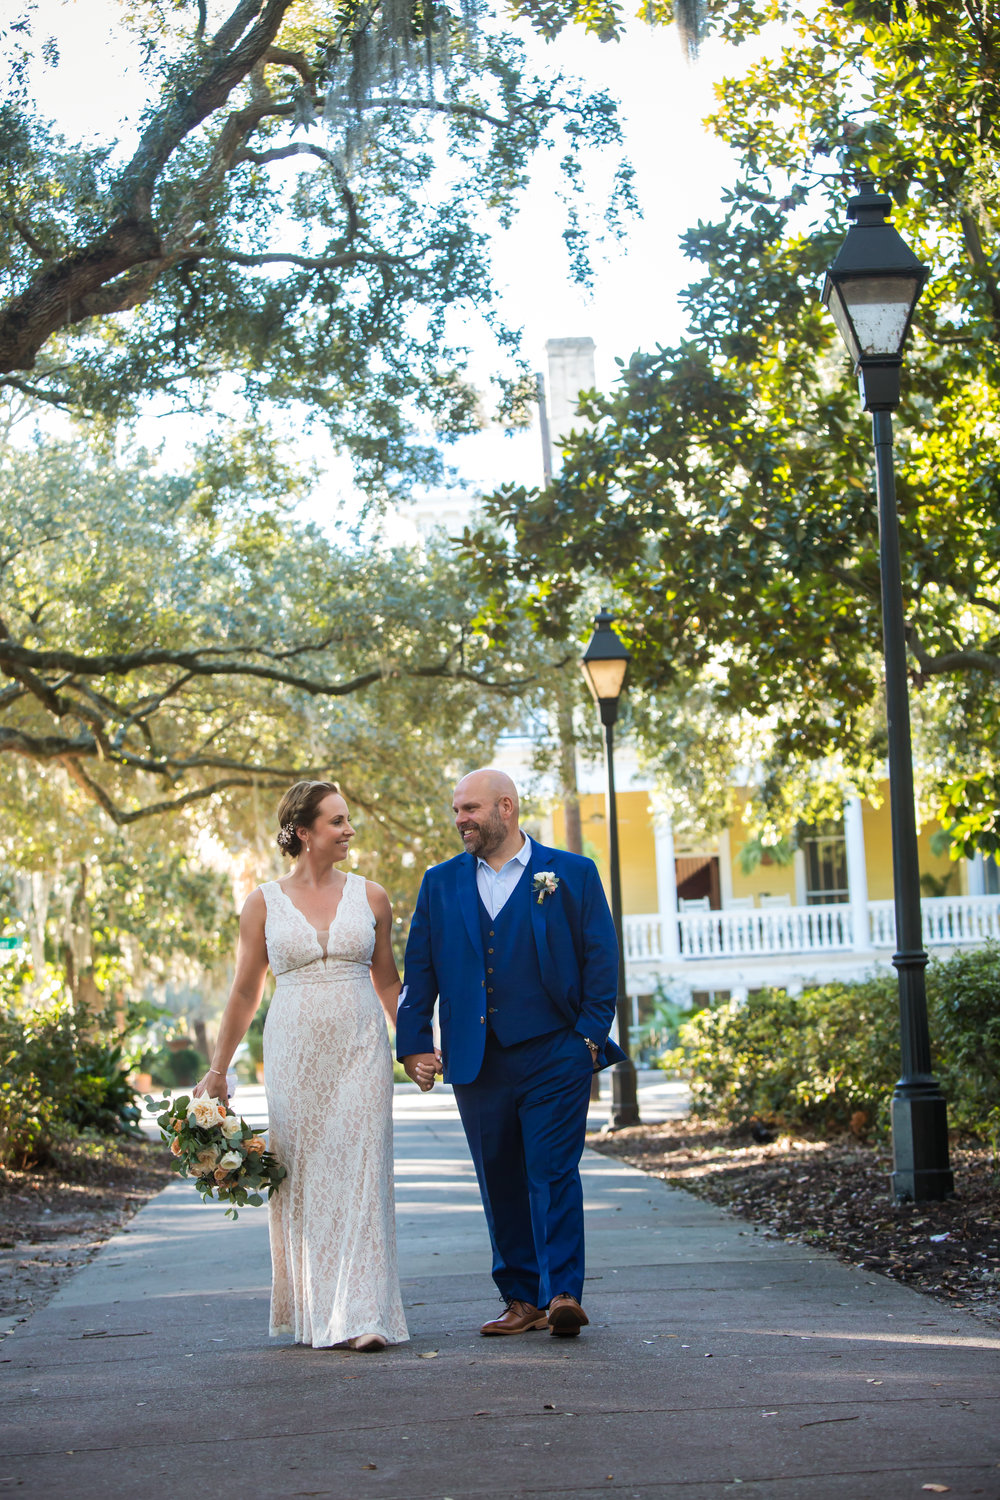 ivory_and_beau_savannah_bridal_shop_ivory_and_beau_florals_lindsey_and_collin_harper_fowlkes_house_the_mansion_on_fosyth_rich_burkhart_photography_savannah_florist_8.jpg